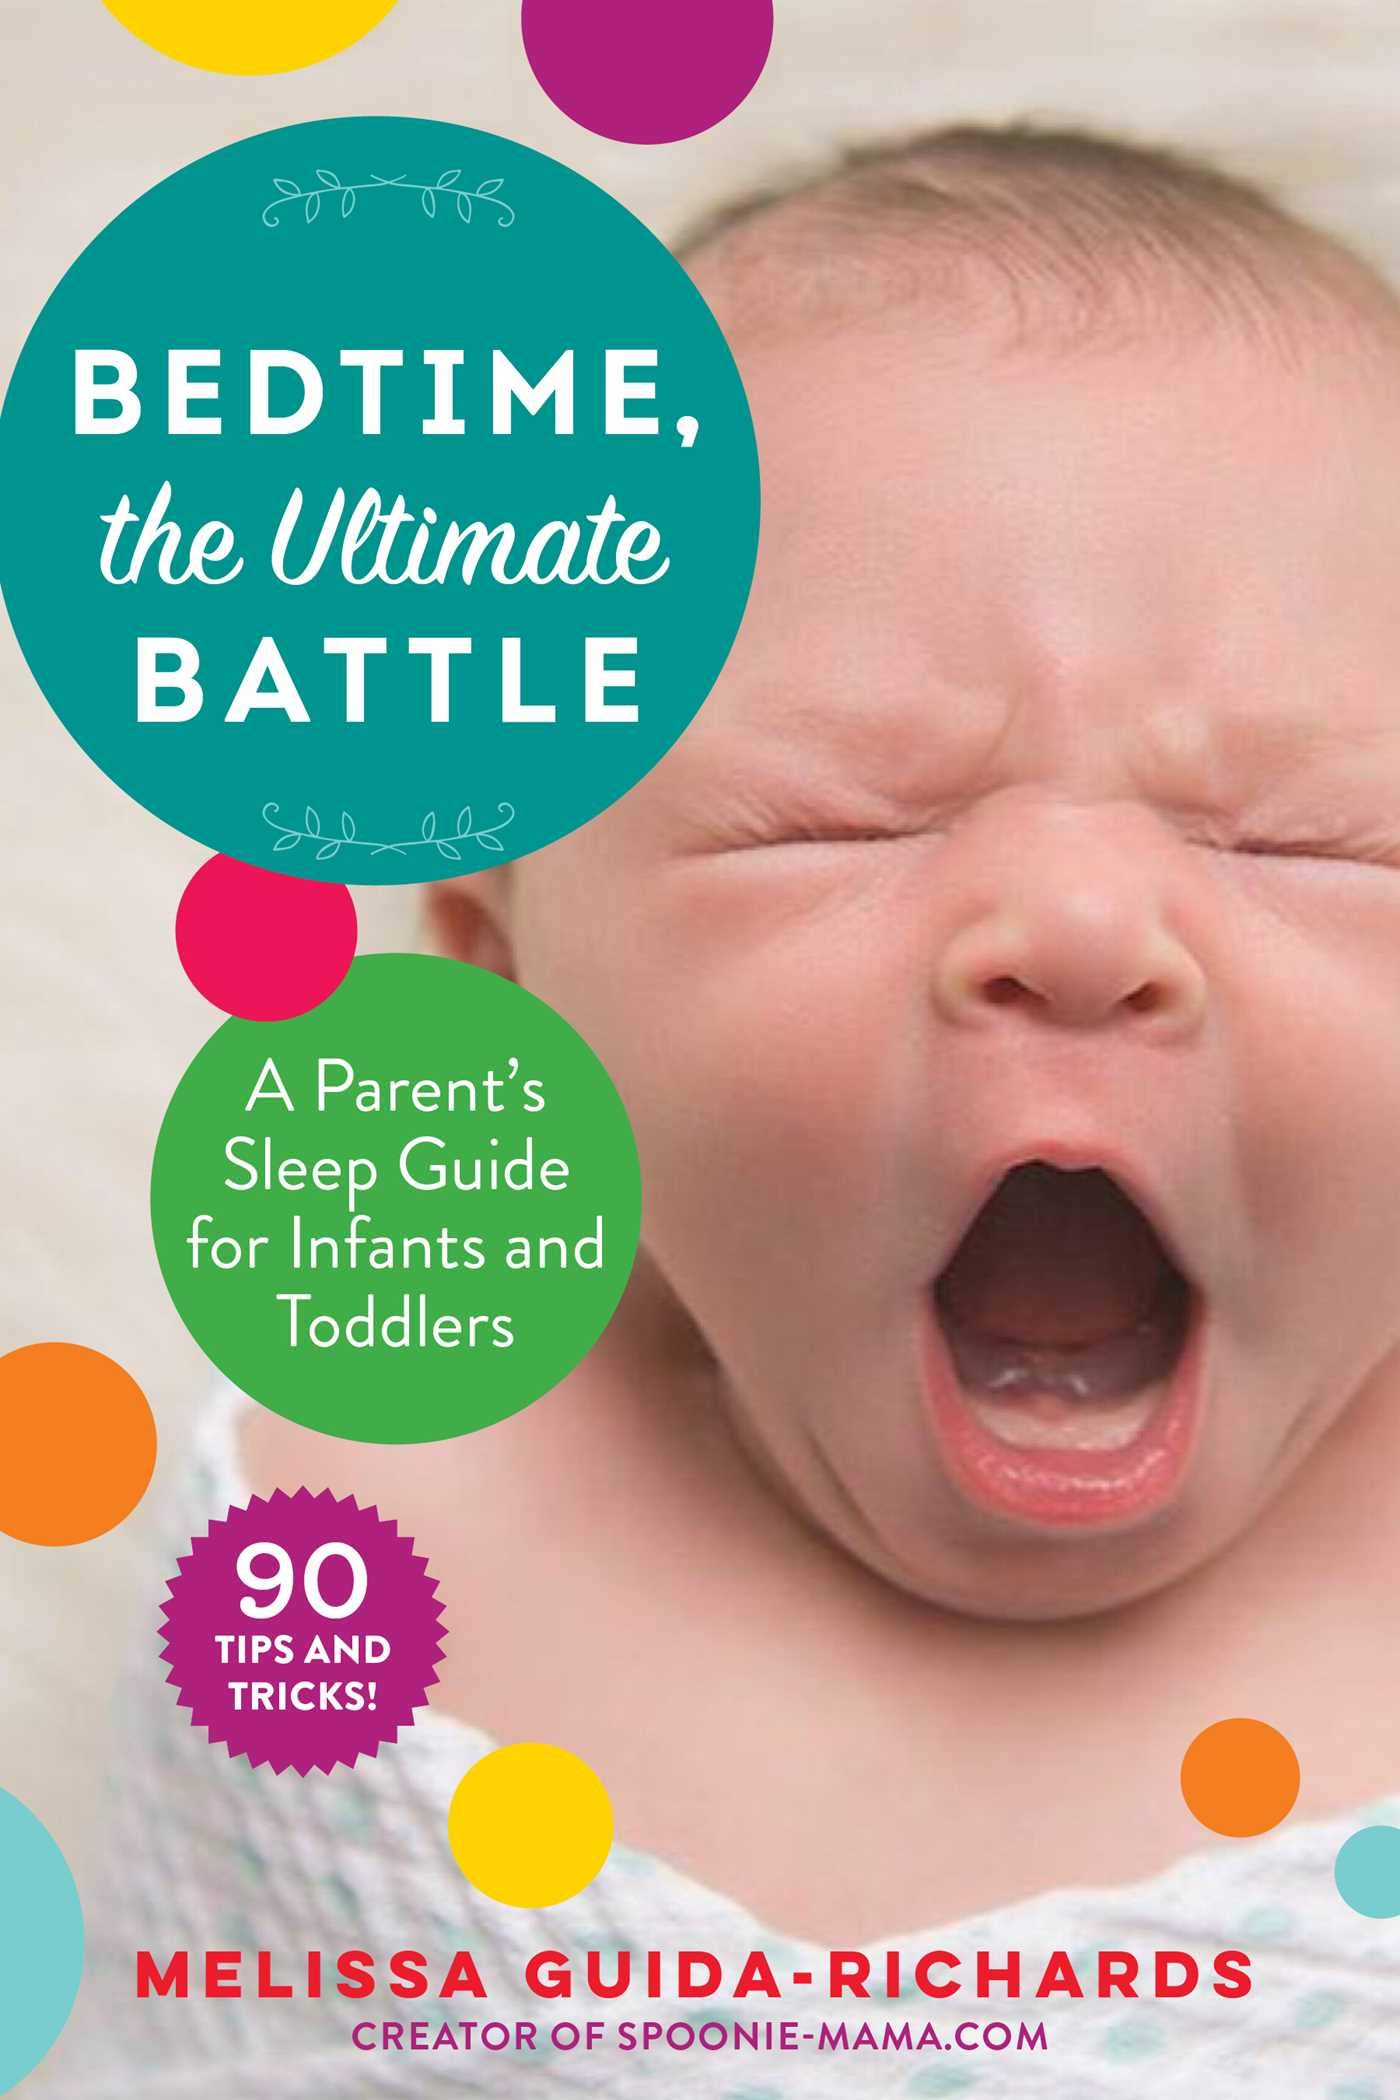 Bedtime, the Ultimate Battle: A Parent's Sleep Guide for Infants and Toddlers by Melissa Guida-Richards